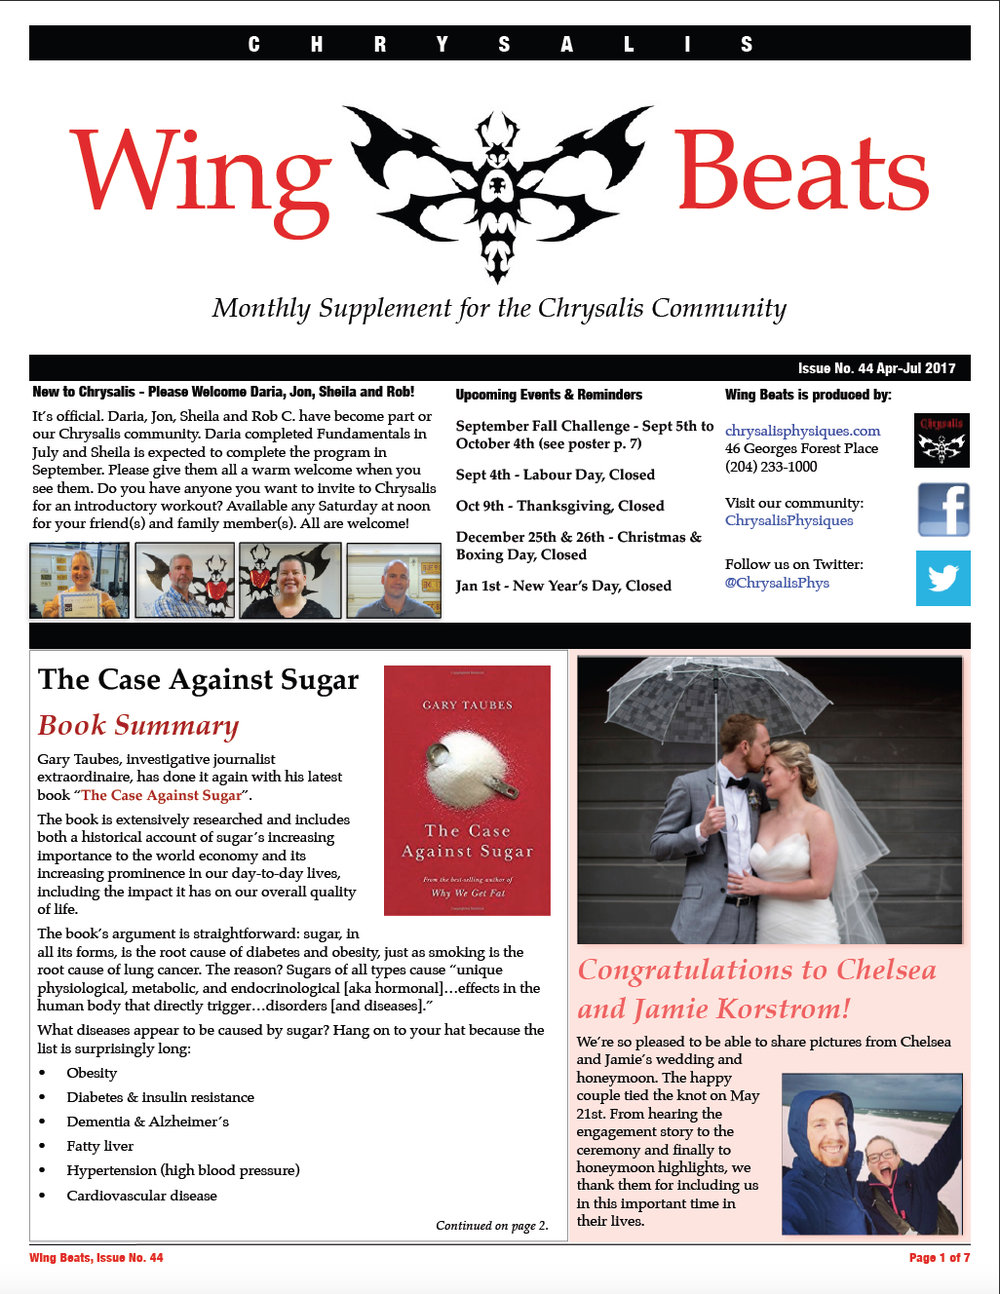 WingBeats Issue #44 - AprJul 2017 - part 1